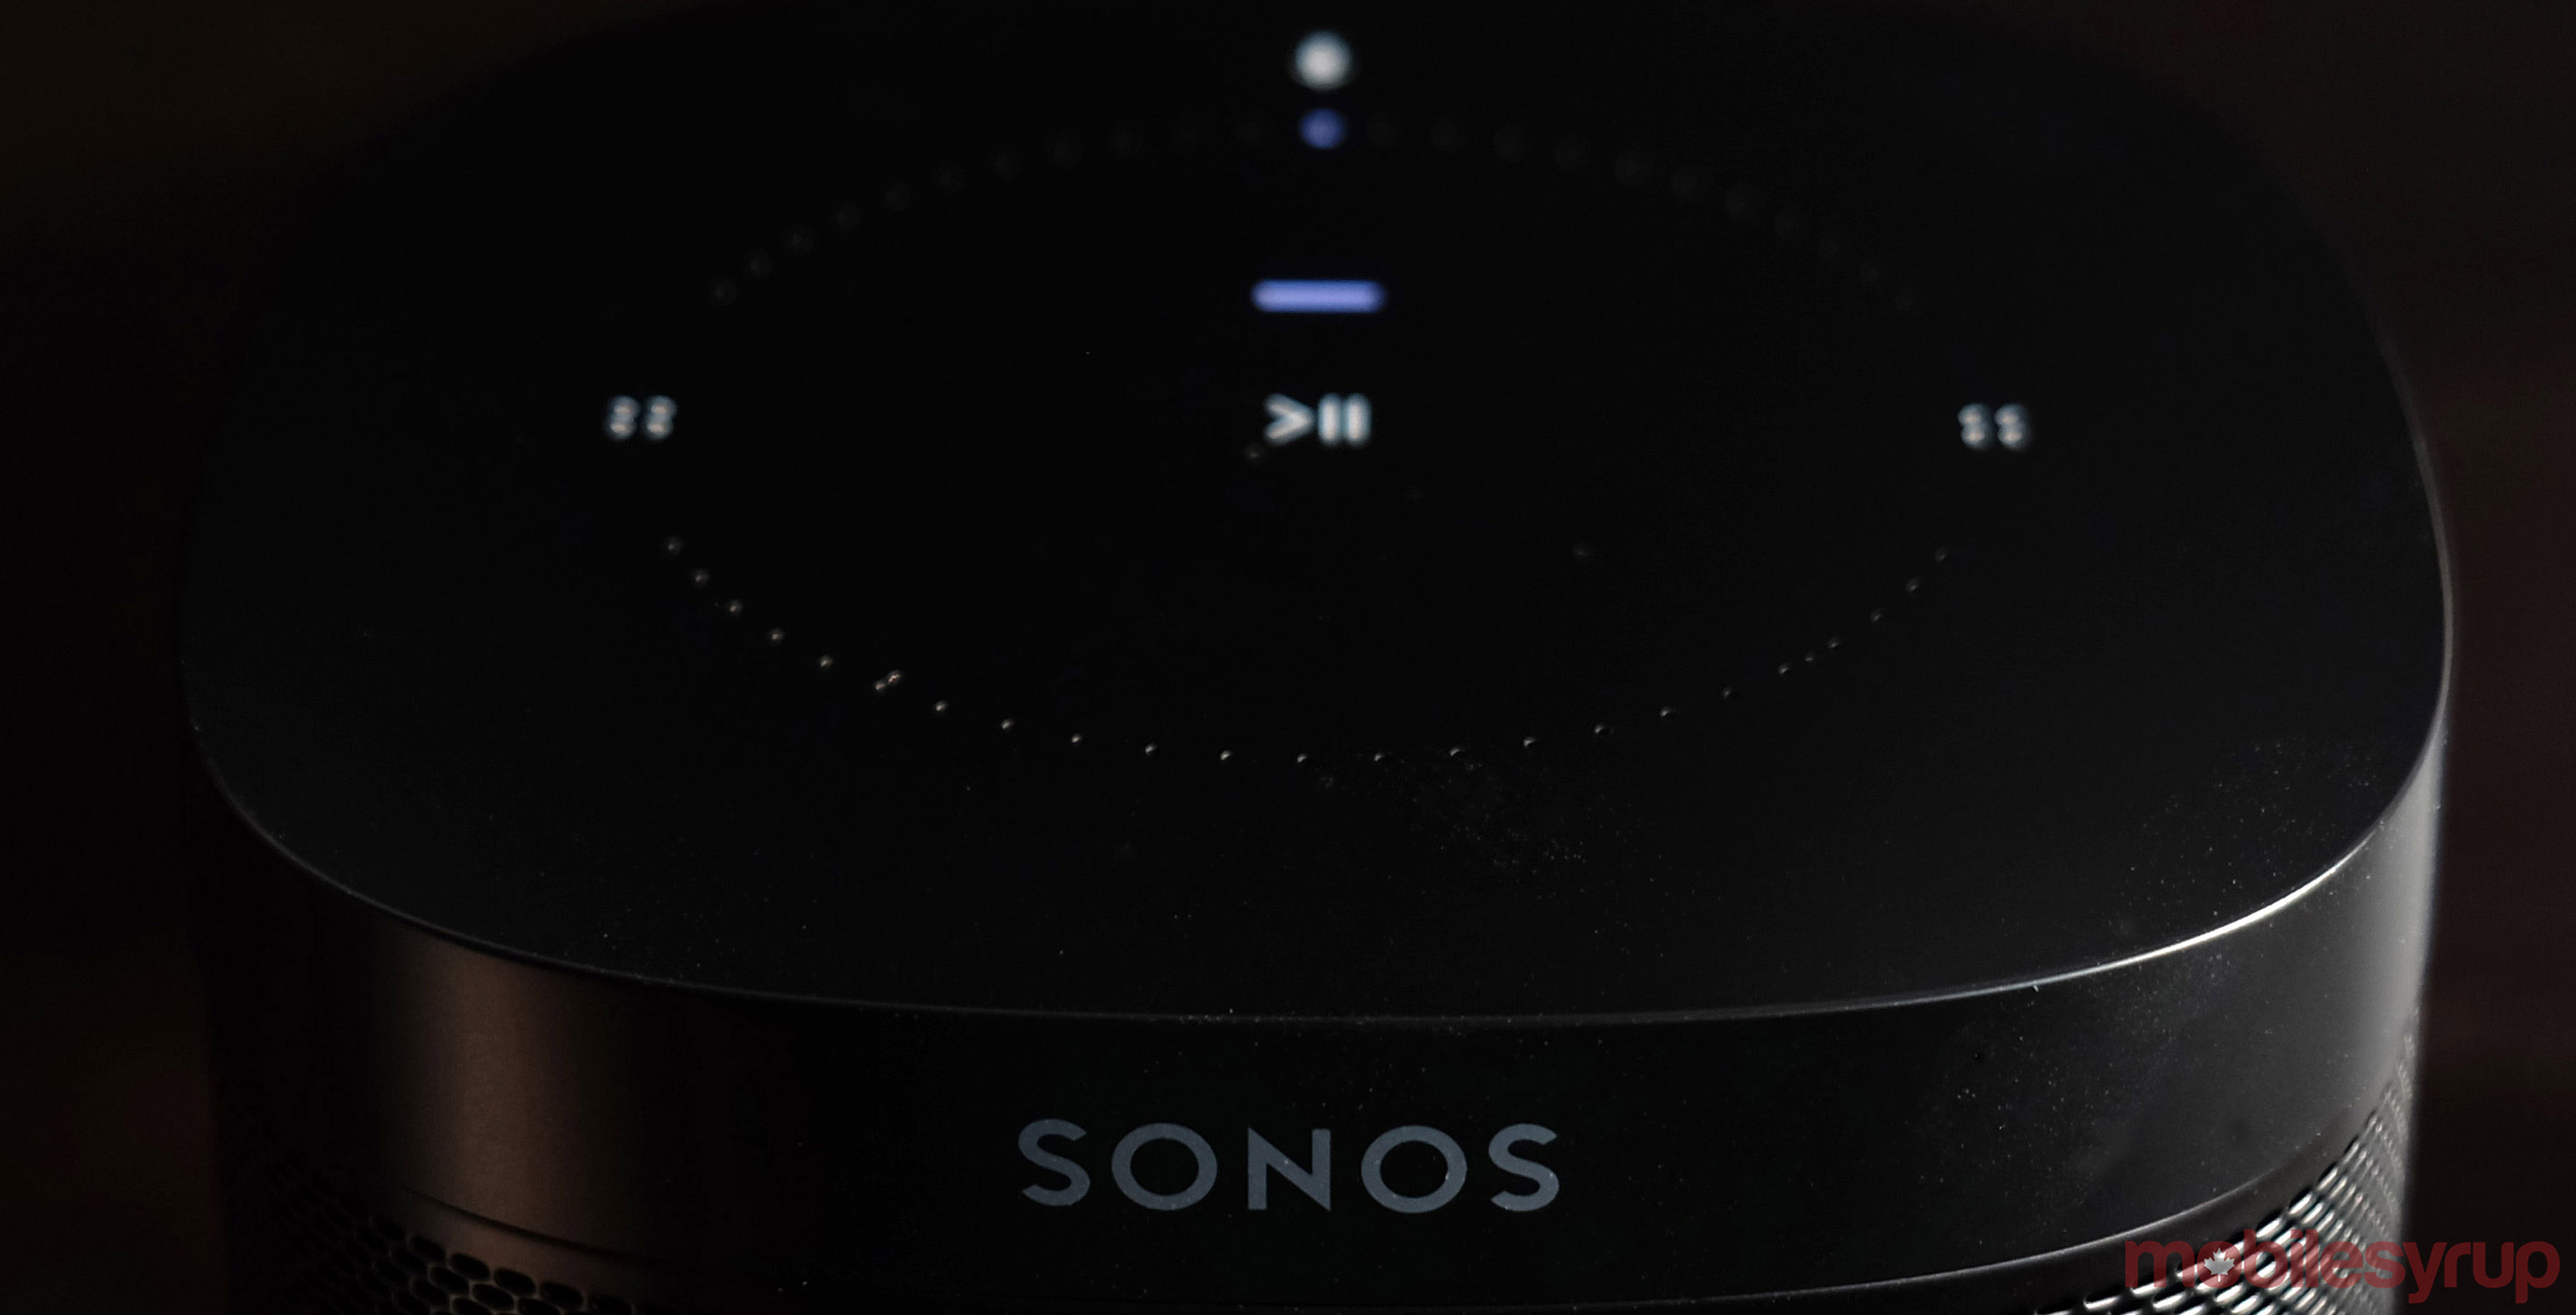 The new Sonos One speaker